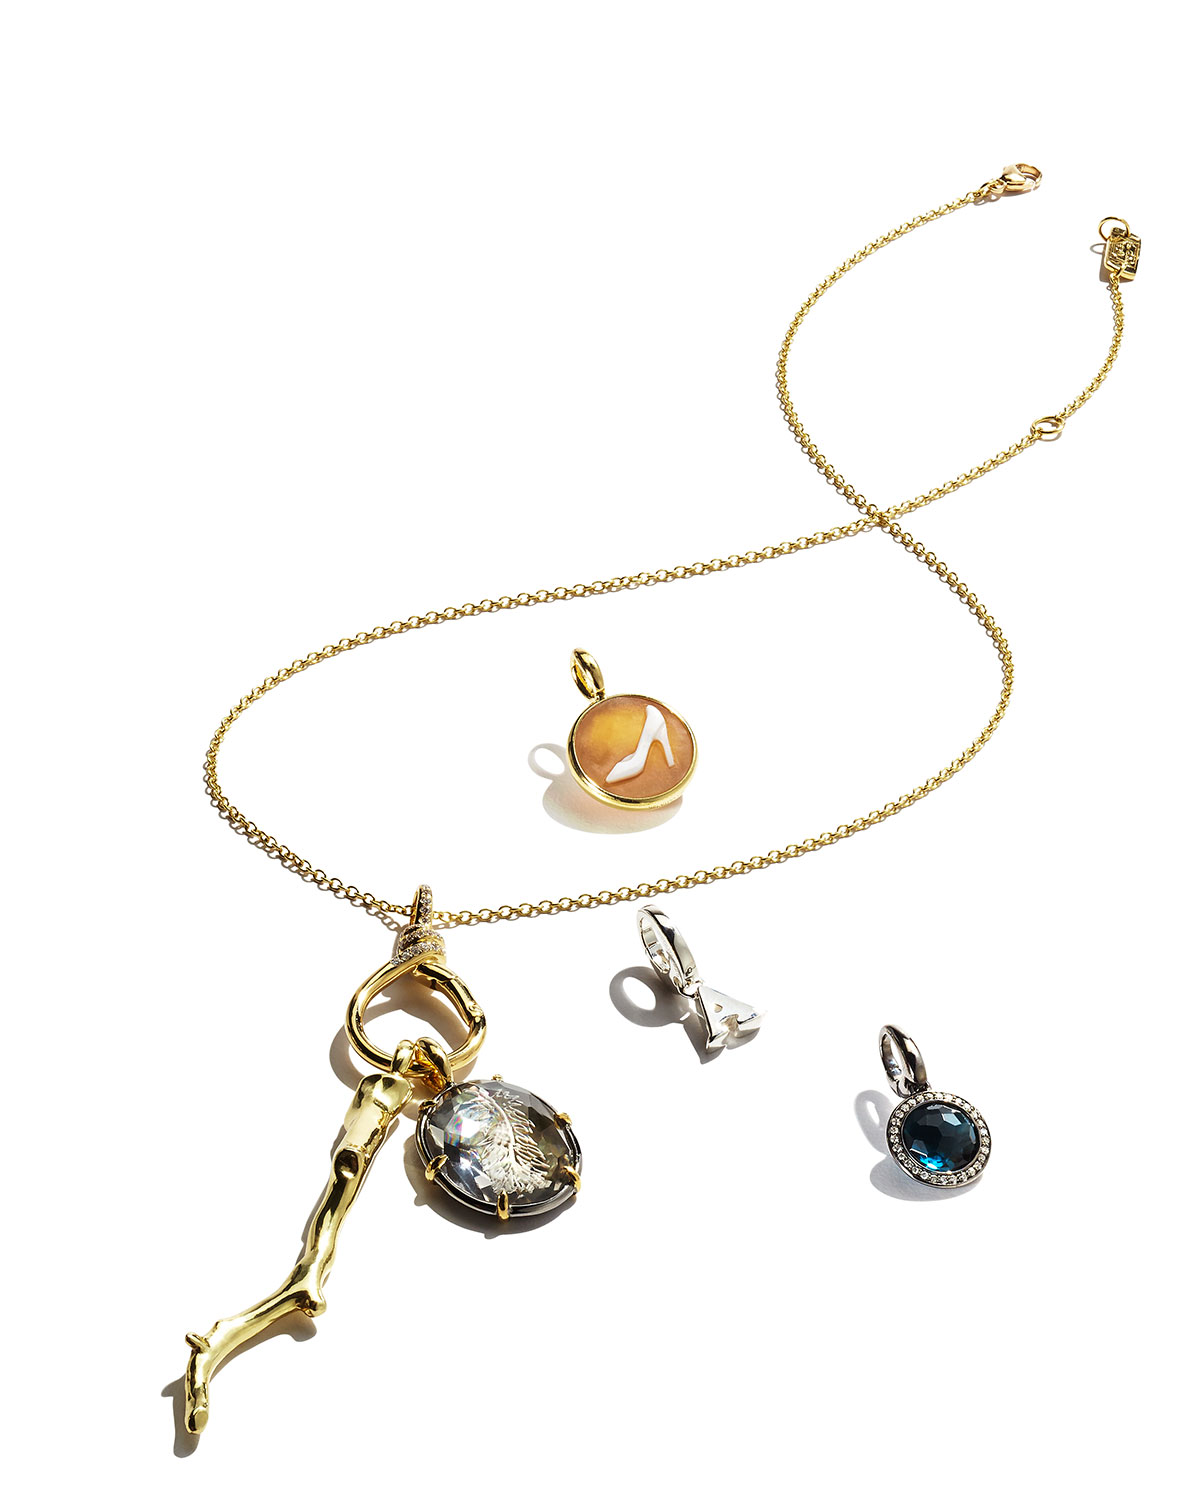 Charms featuring Ippolita